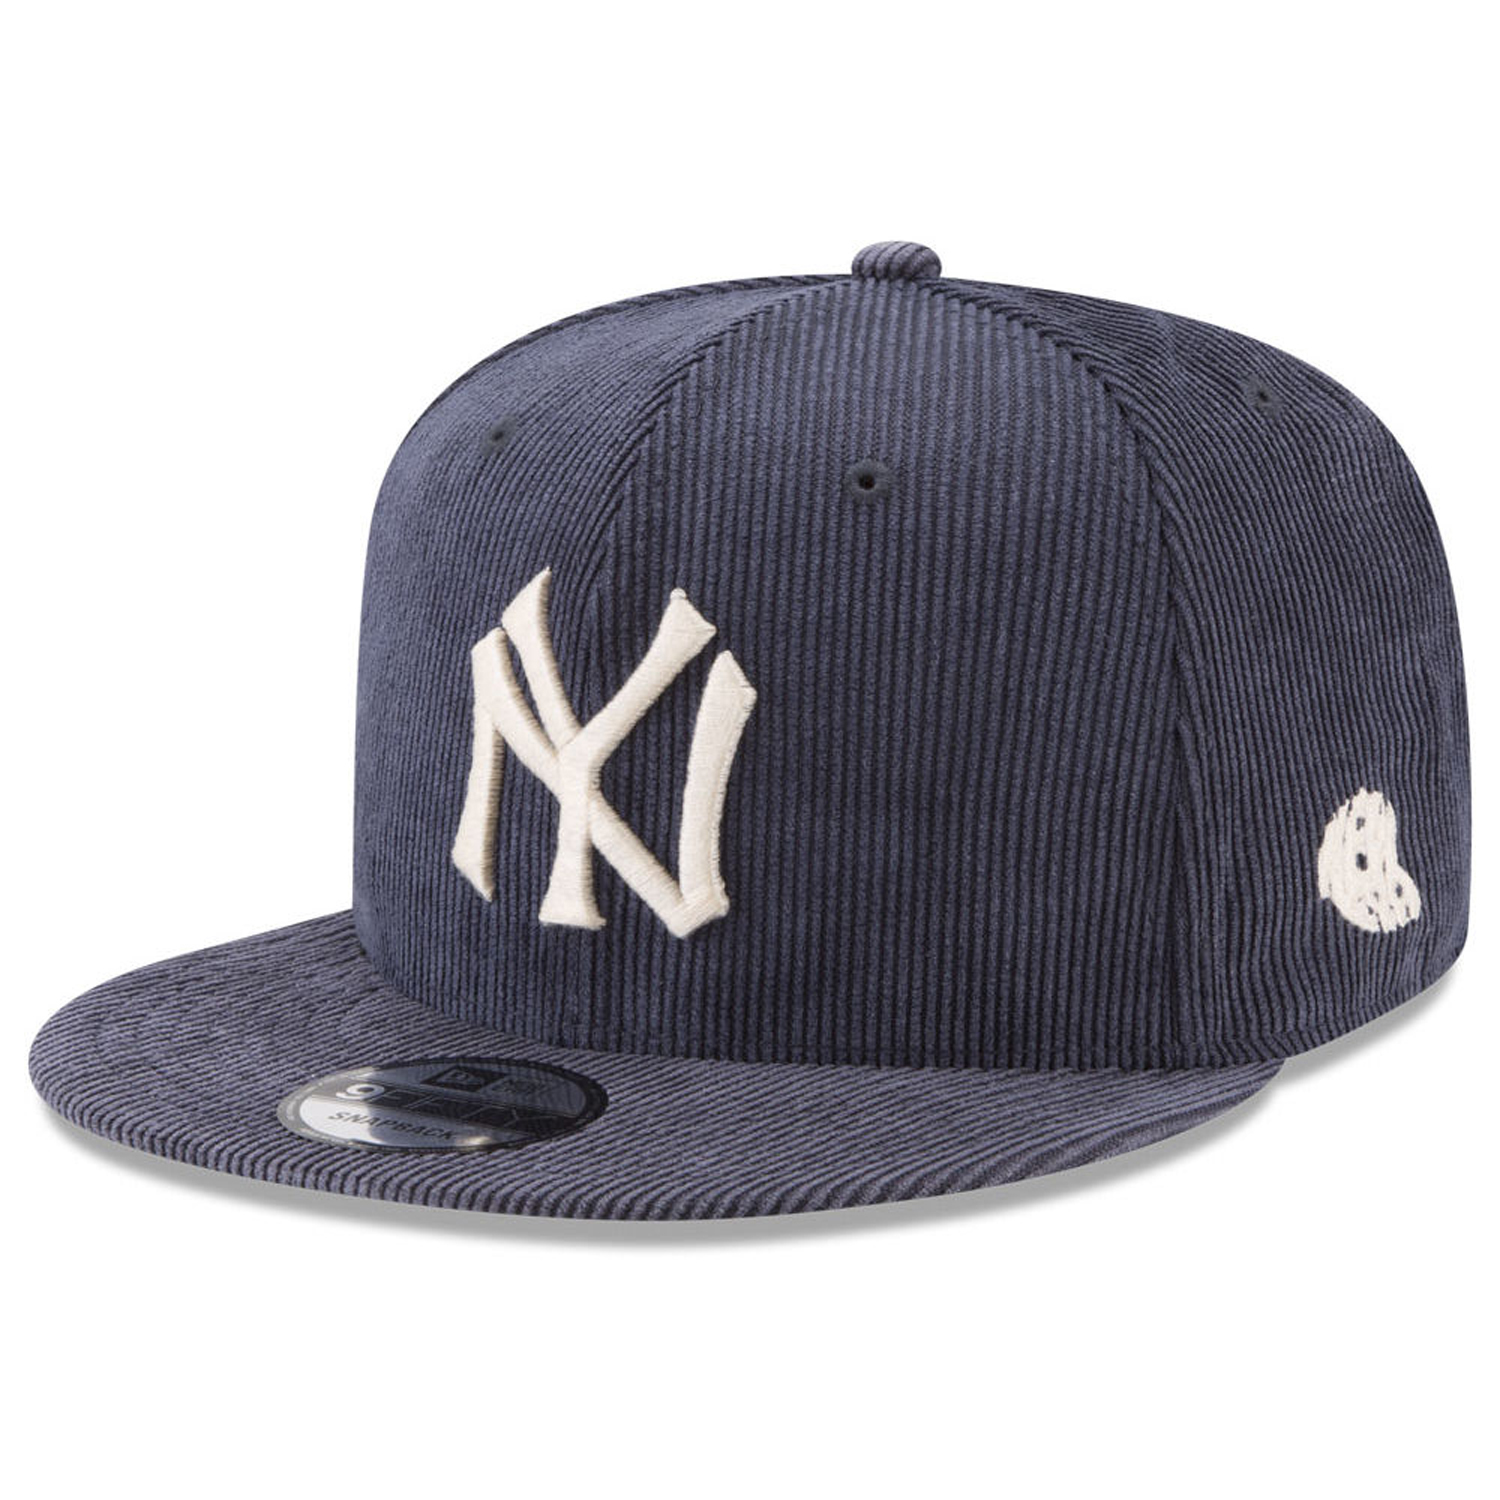 eb4b5358a Details about New Era NY York Yankees Cooperstown Retro Logo Corduroy  9Fifty Snapback Cap Hat